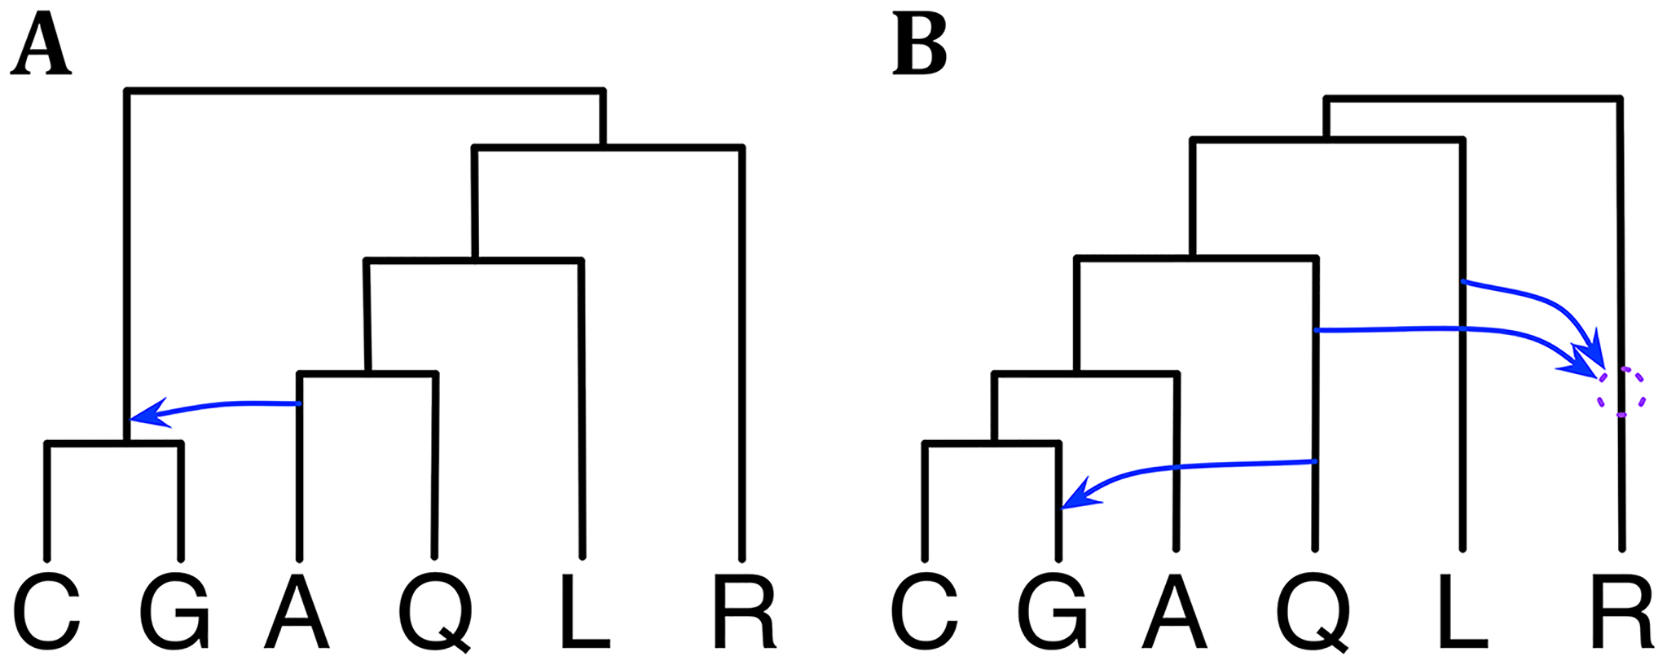 Phylogenetic history of the six mosquito genomes.